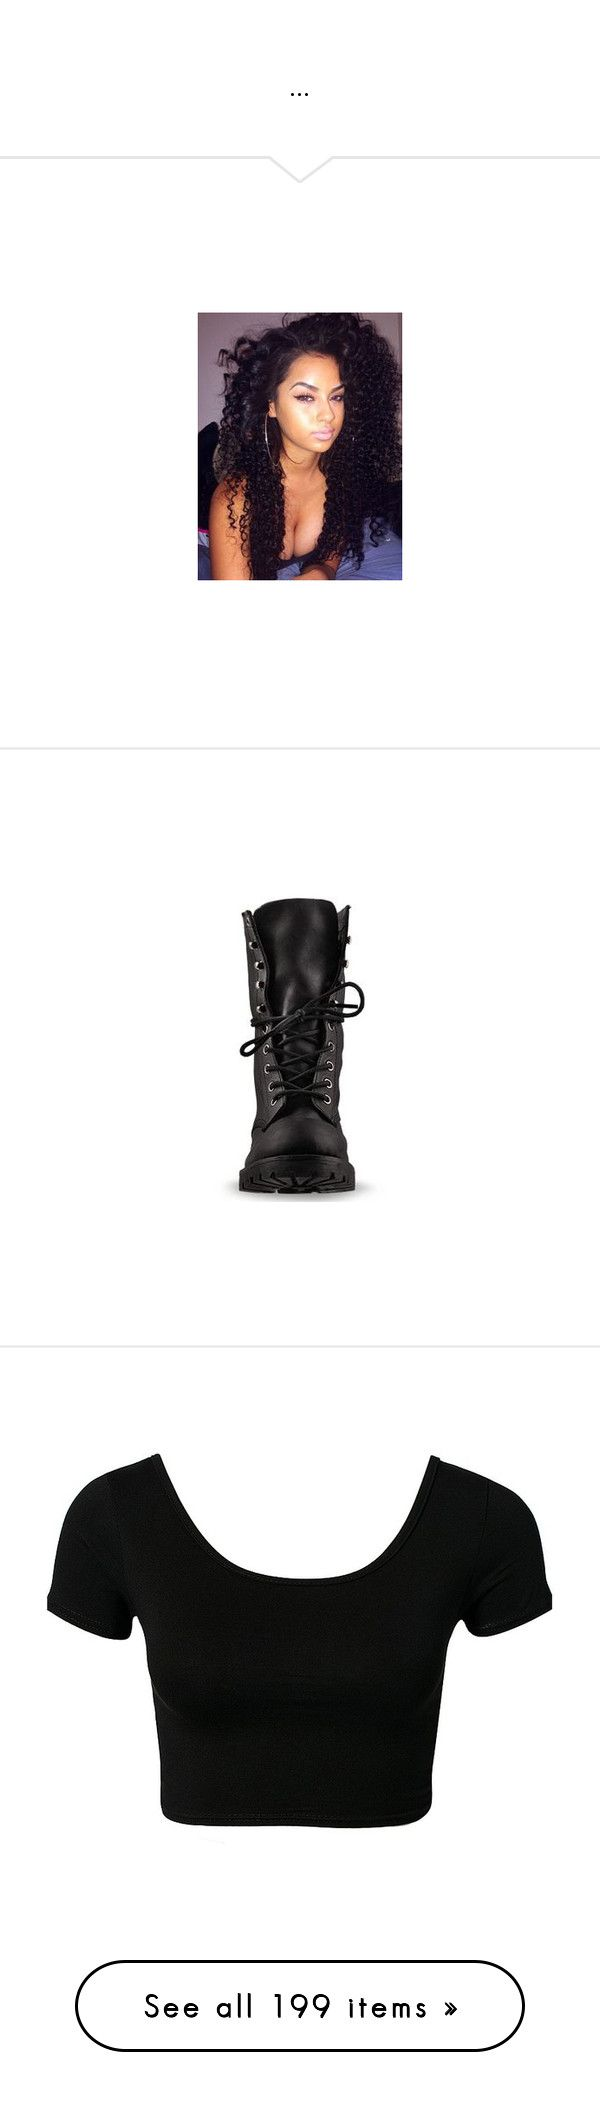 """..."" by trillest-queen ❤ liked on Polyvore featuring hair, pictures, shoes, boots, sapato, black distressed, leather military boots, distressed black boots, black army boots and combat booties"